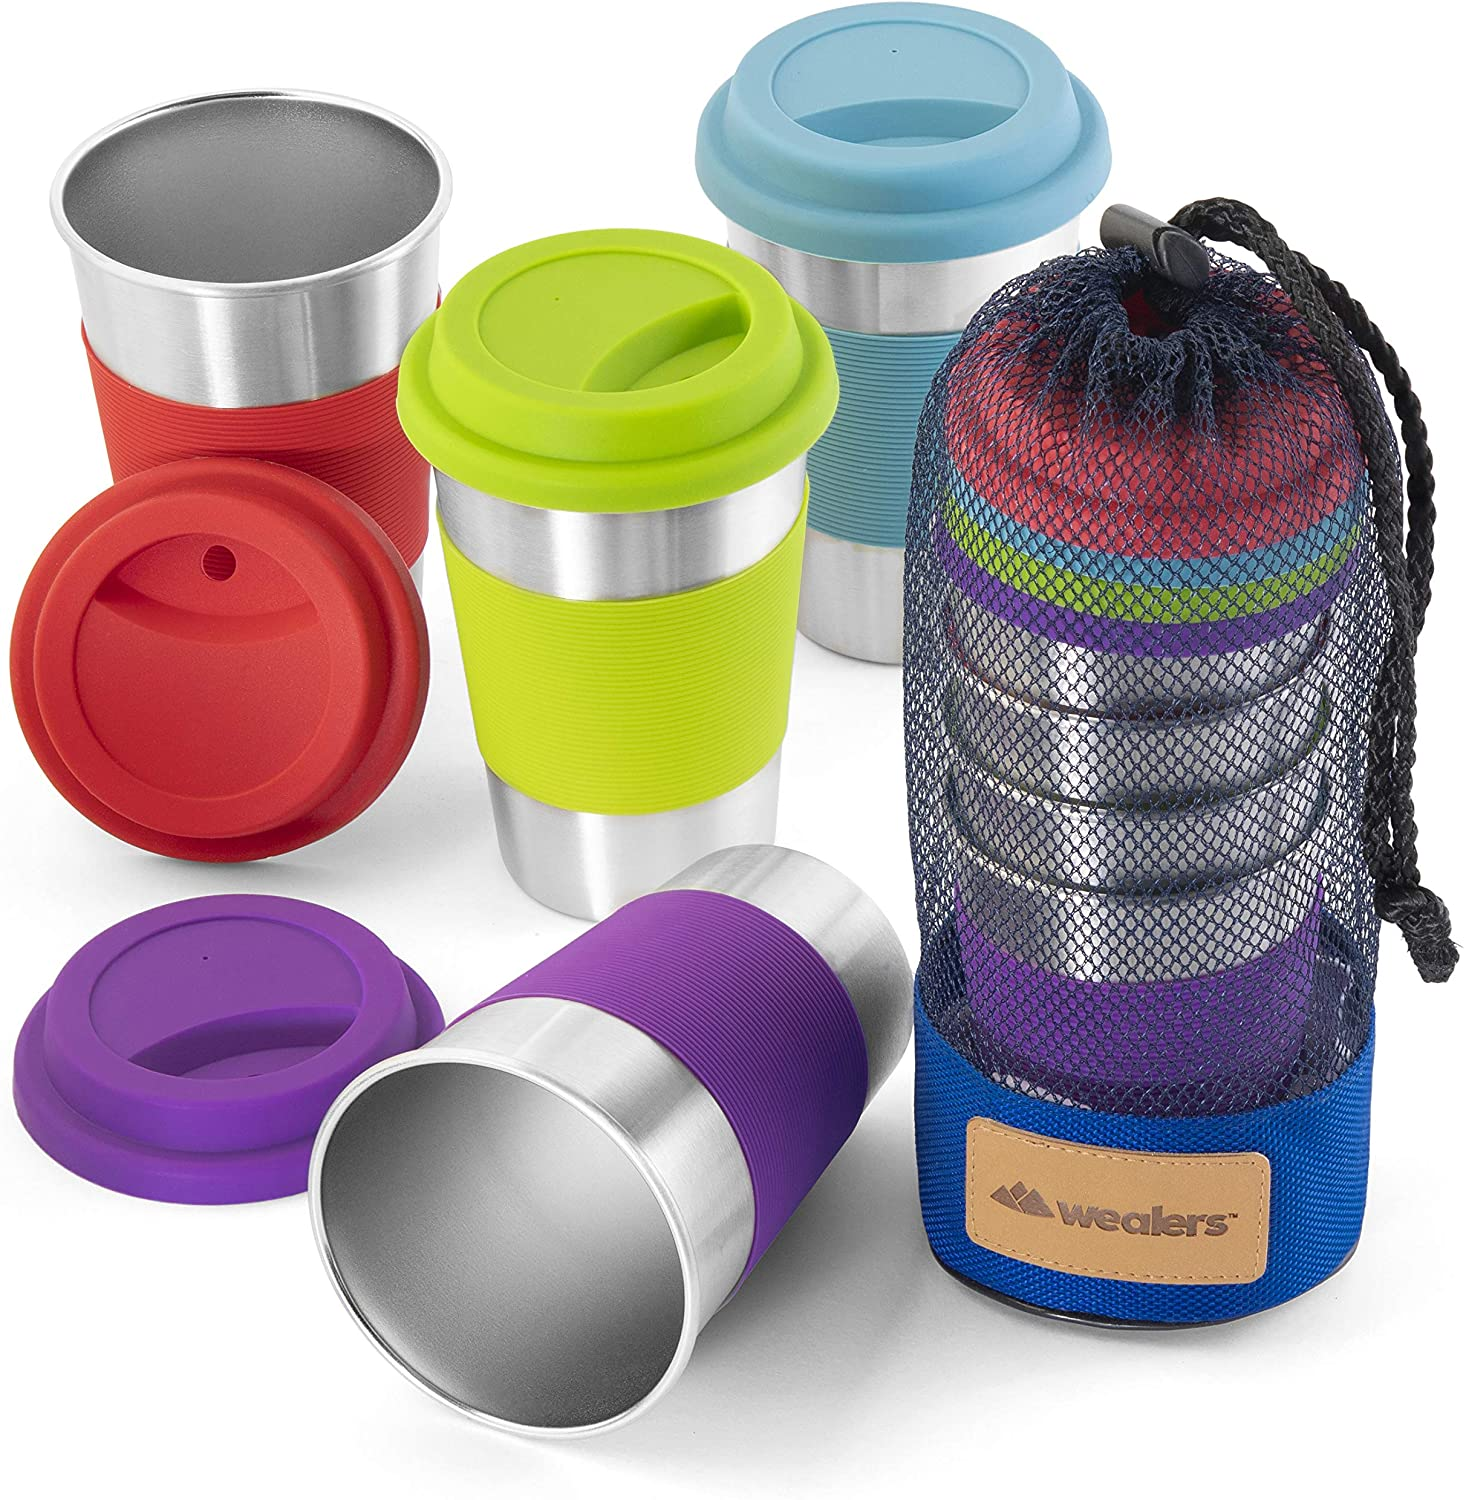 Stainless Steel Cup Tumbler Set Cold Store Drinkin Good for Super special price Drink Cups